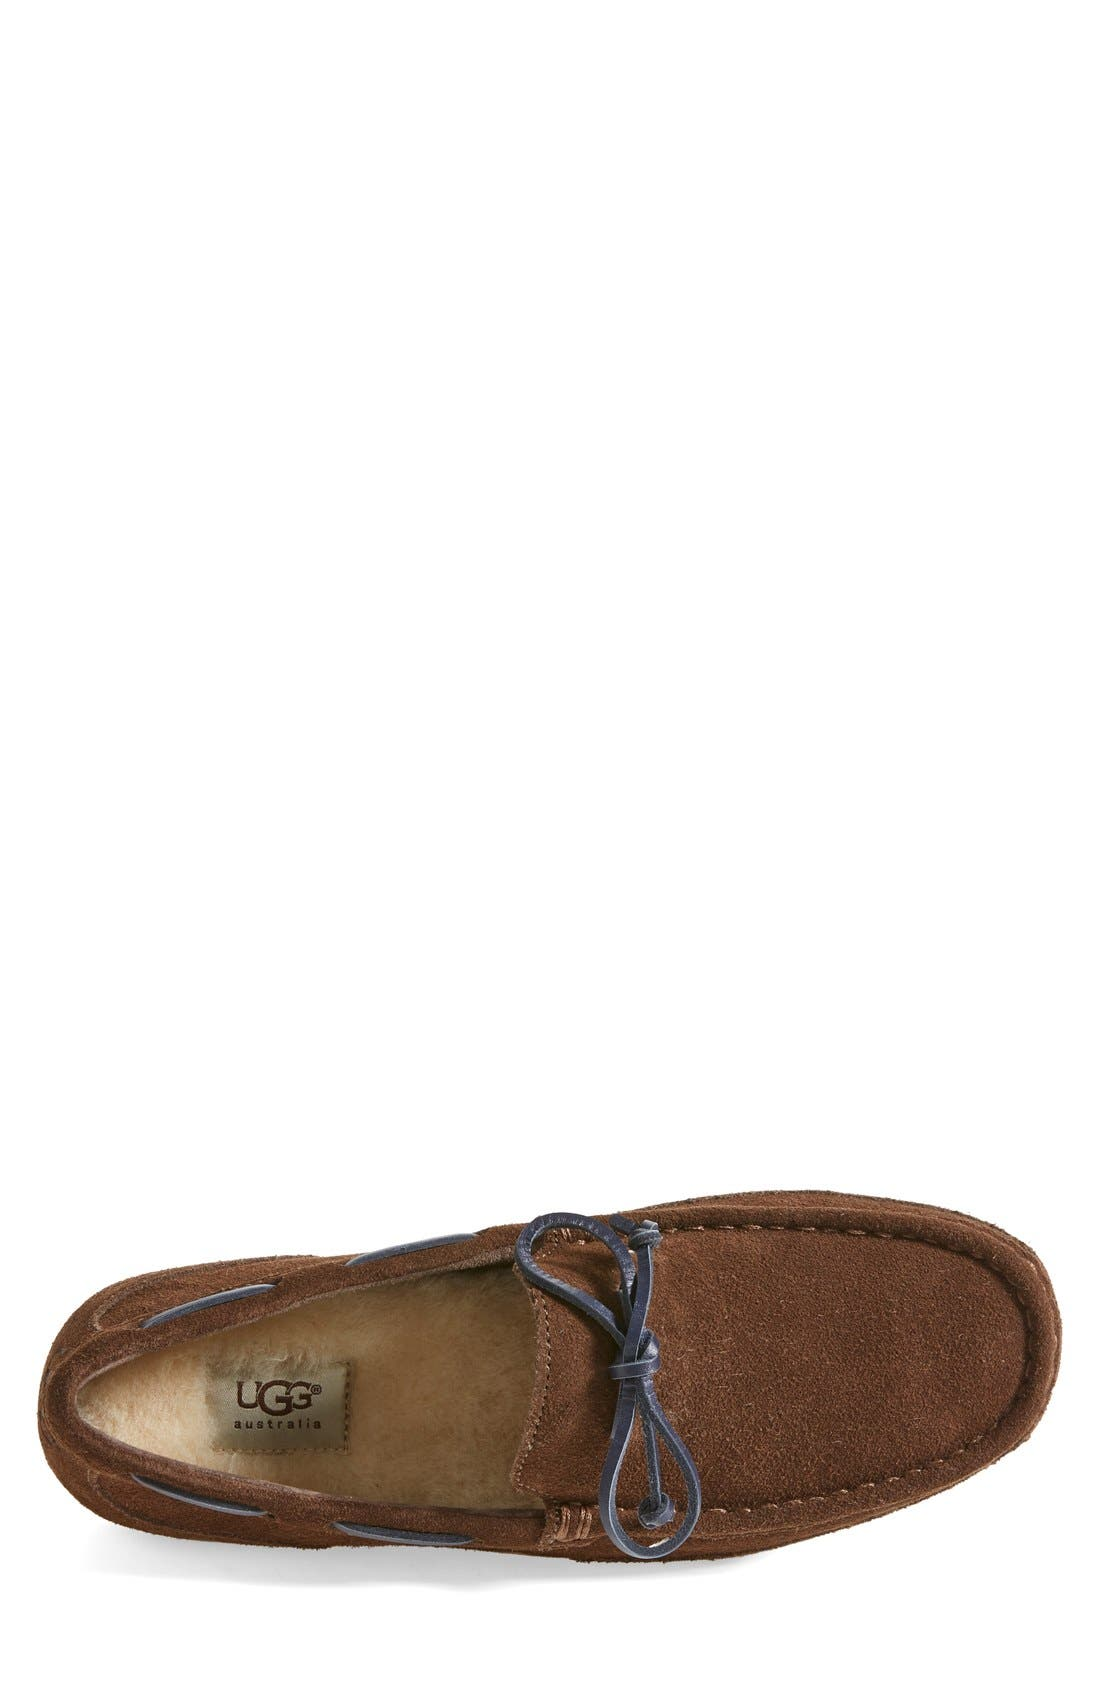 Alternate Image 3  - UGG® 'Chester' Driving Loafer (Men)